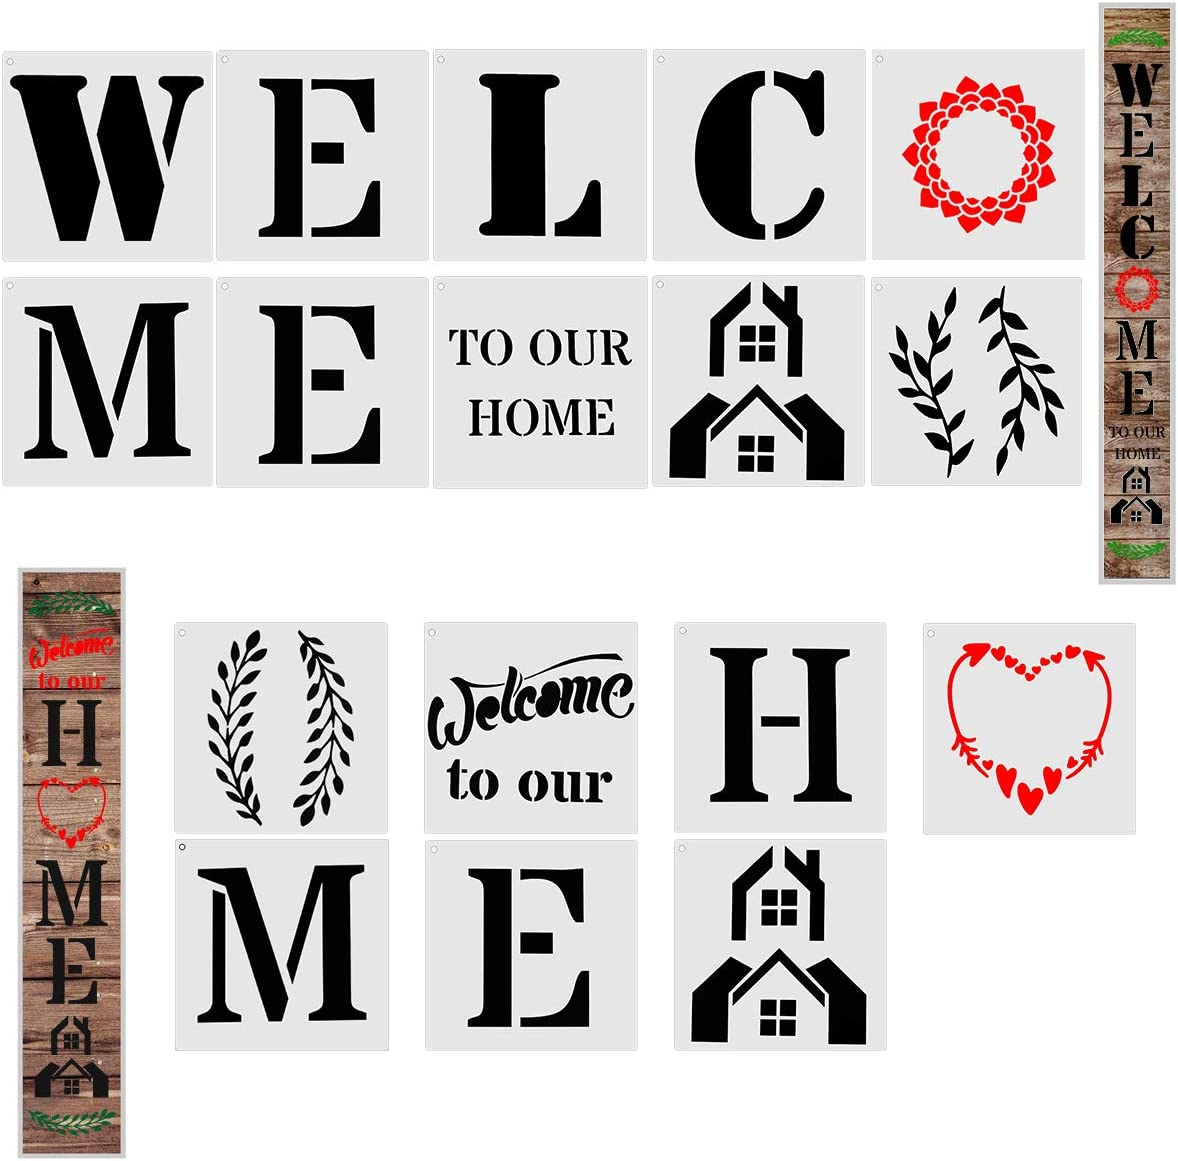 Fireboomoon 17 PCS Reusable Large Welcome and Home Sign Stencils Set,Vertical Individual Word Letter Sign Stencils Templates for DIY Welcome Sign for Front Door Decoration,Rustic Home Porch DIY Decor